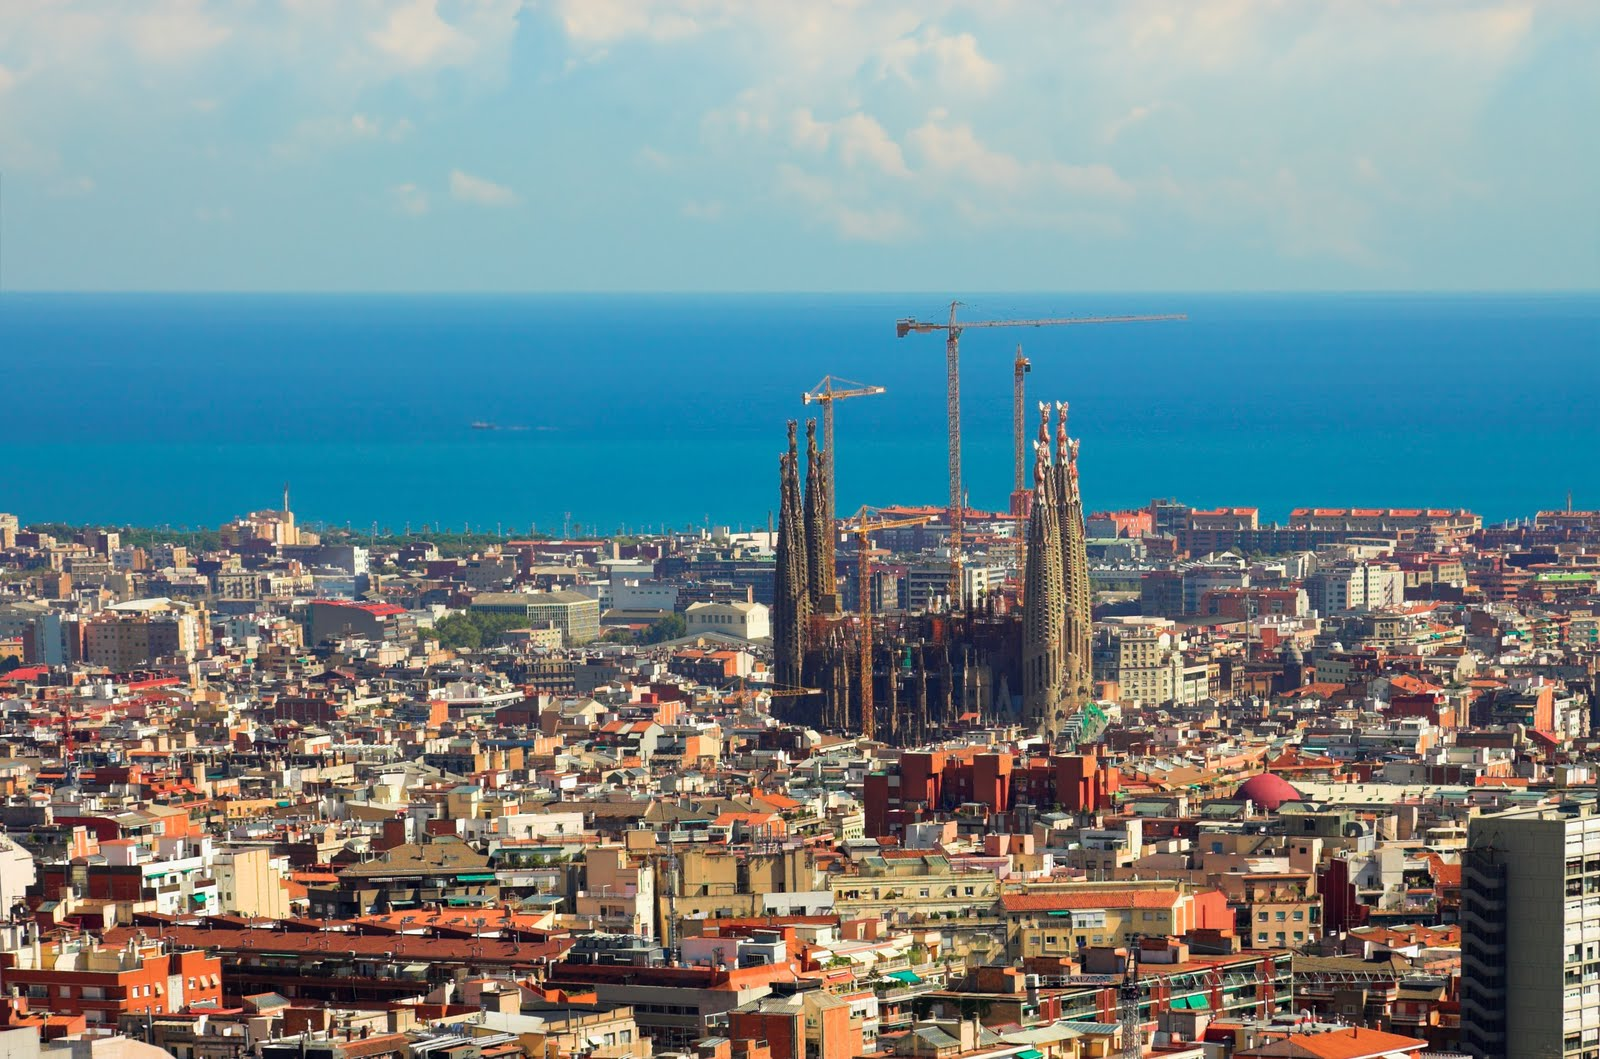 Barcelona and the Familia Sagrada towering over the city. It's been under construction for over a century. (photo from blog.iese.edu)